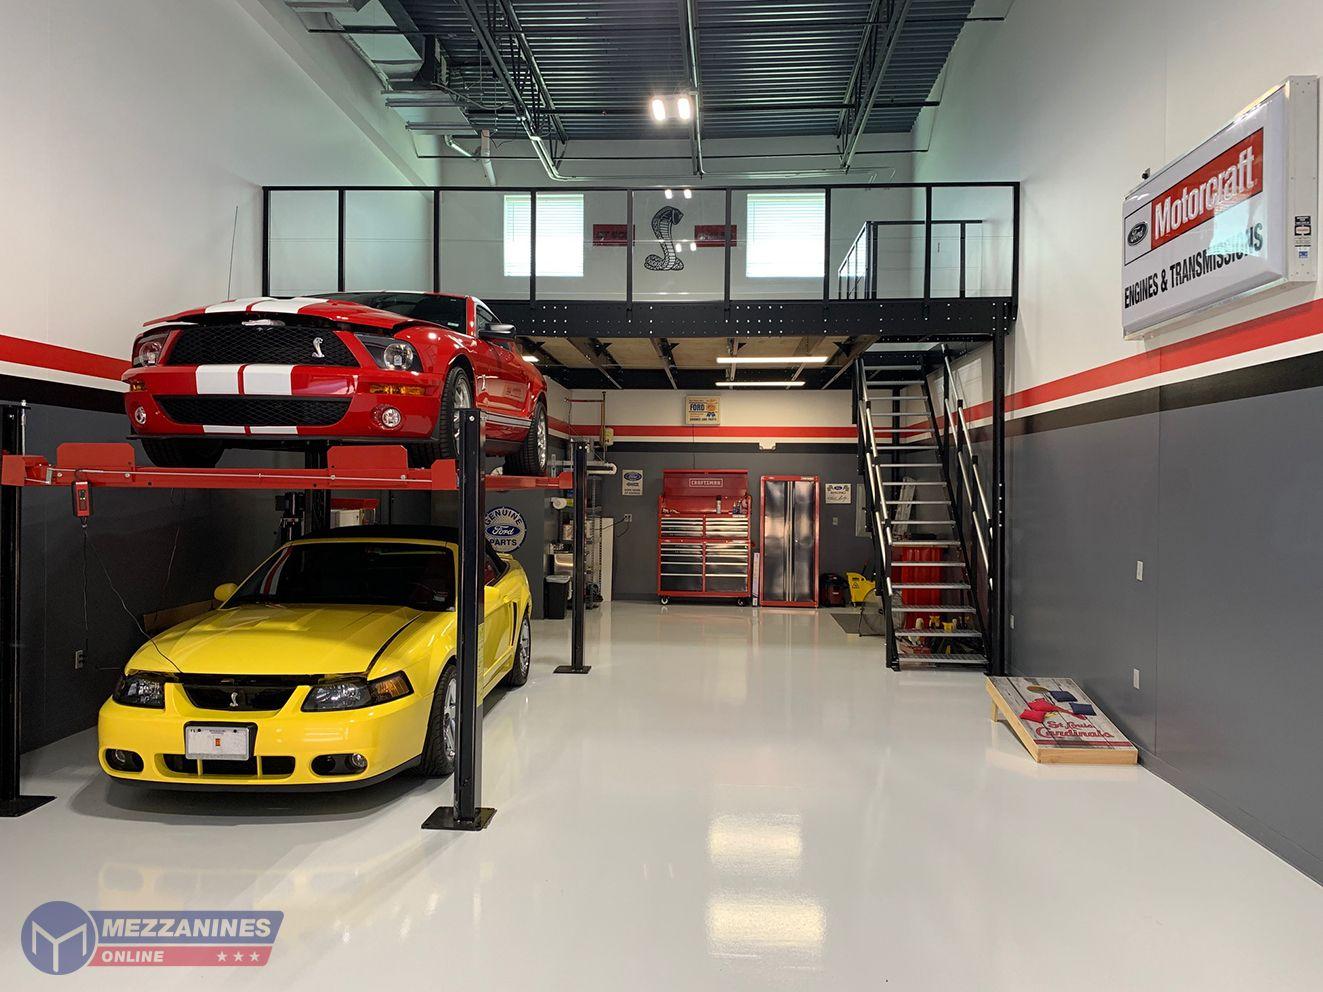 Pin by TECROSTAR on GARAGES AND II in 2020